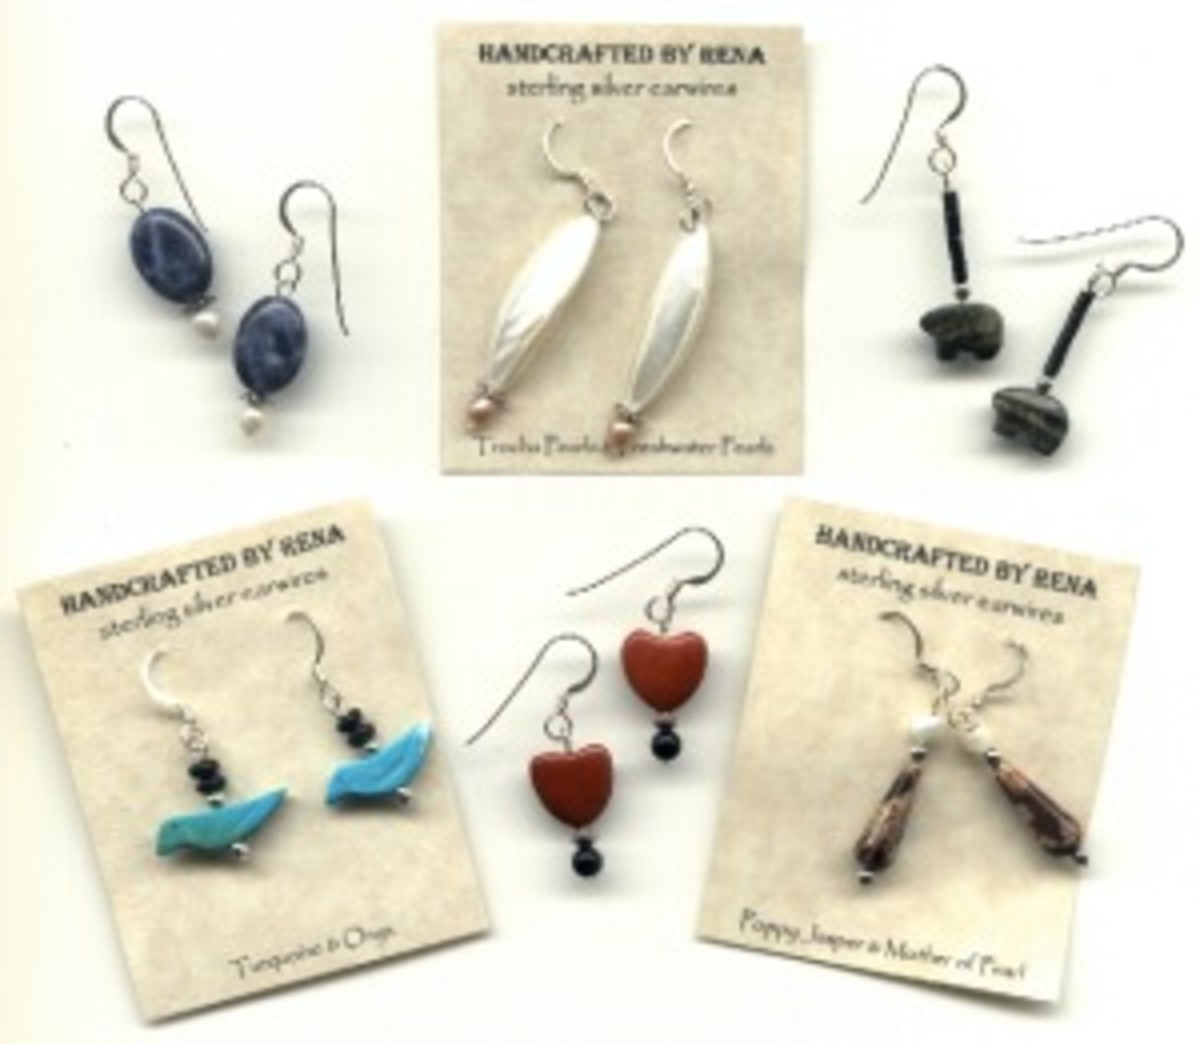 Some of my earliest earring creations - and one of my earliest attempts at photographing jewelry!